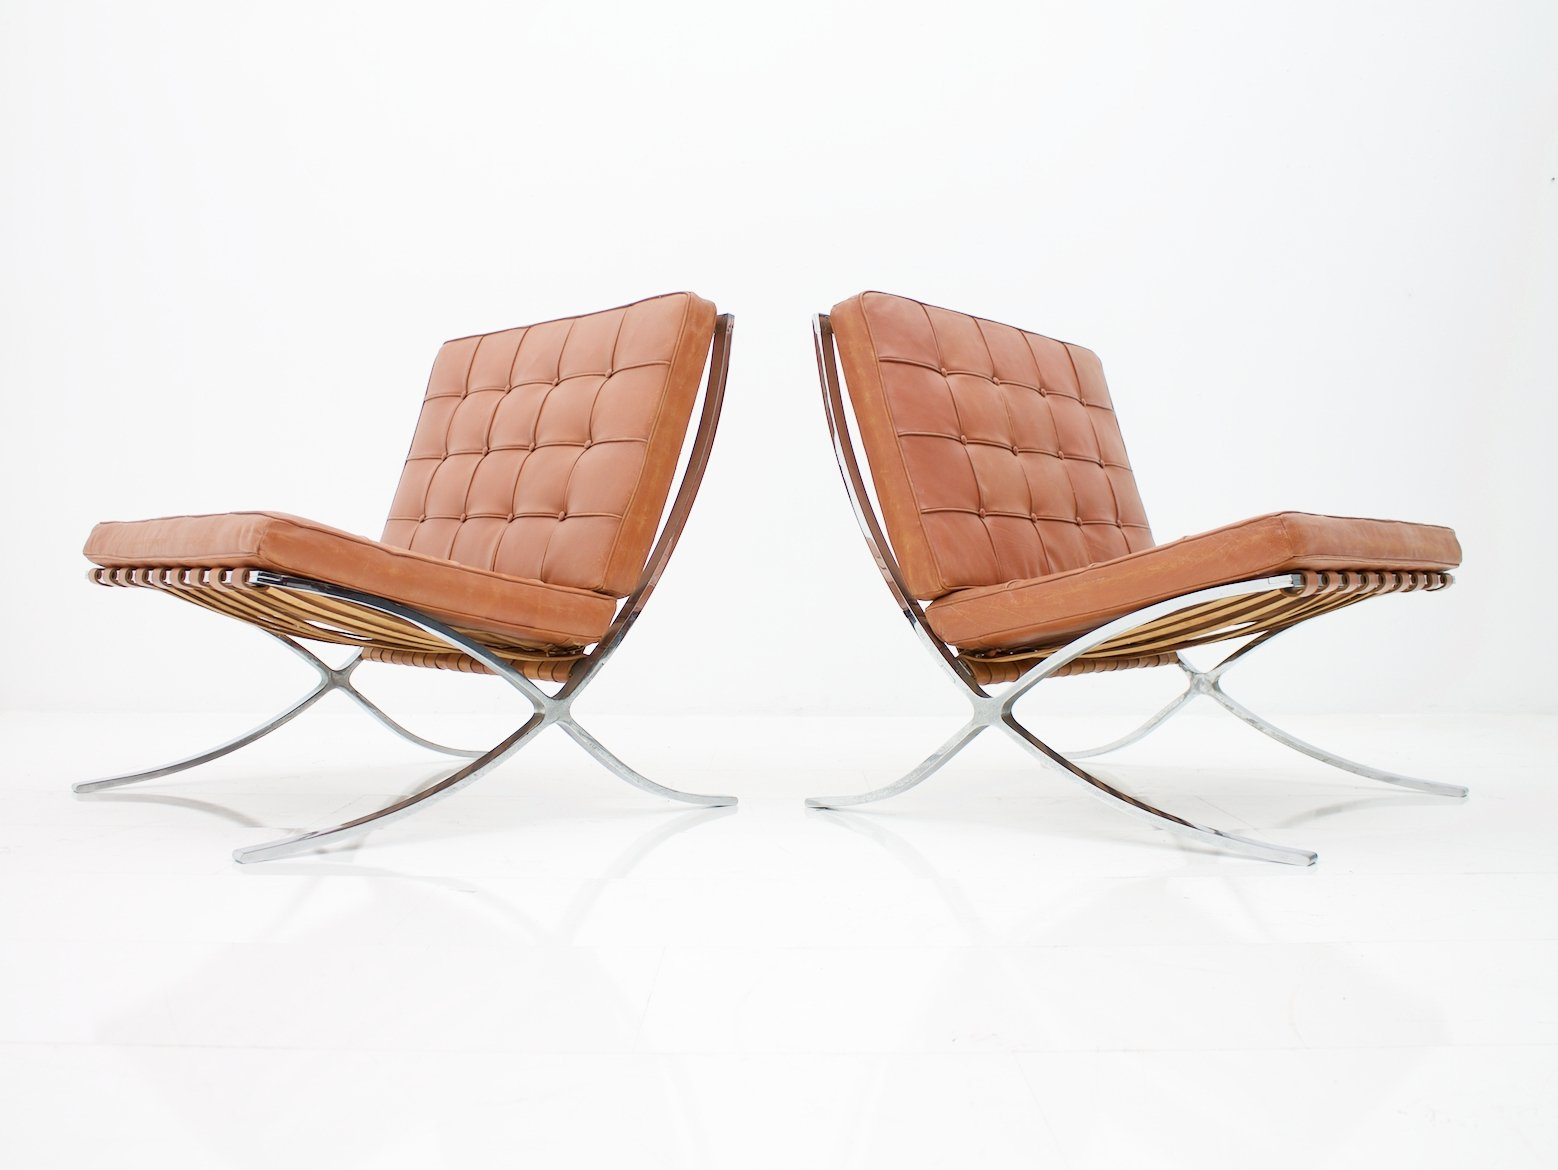 Rare Set Of Two Screwed Barcelona Chairs By Mies Van Der Rohe For